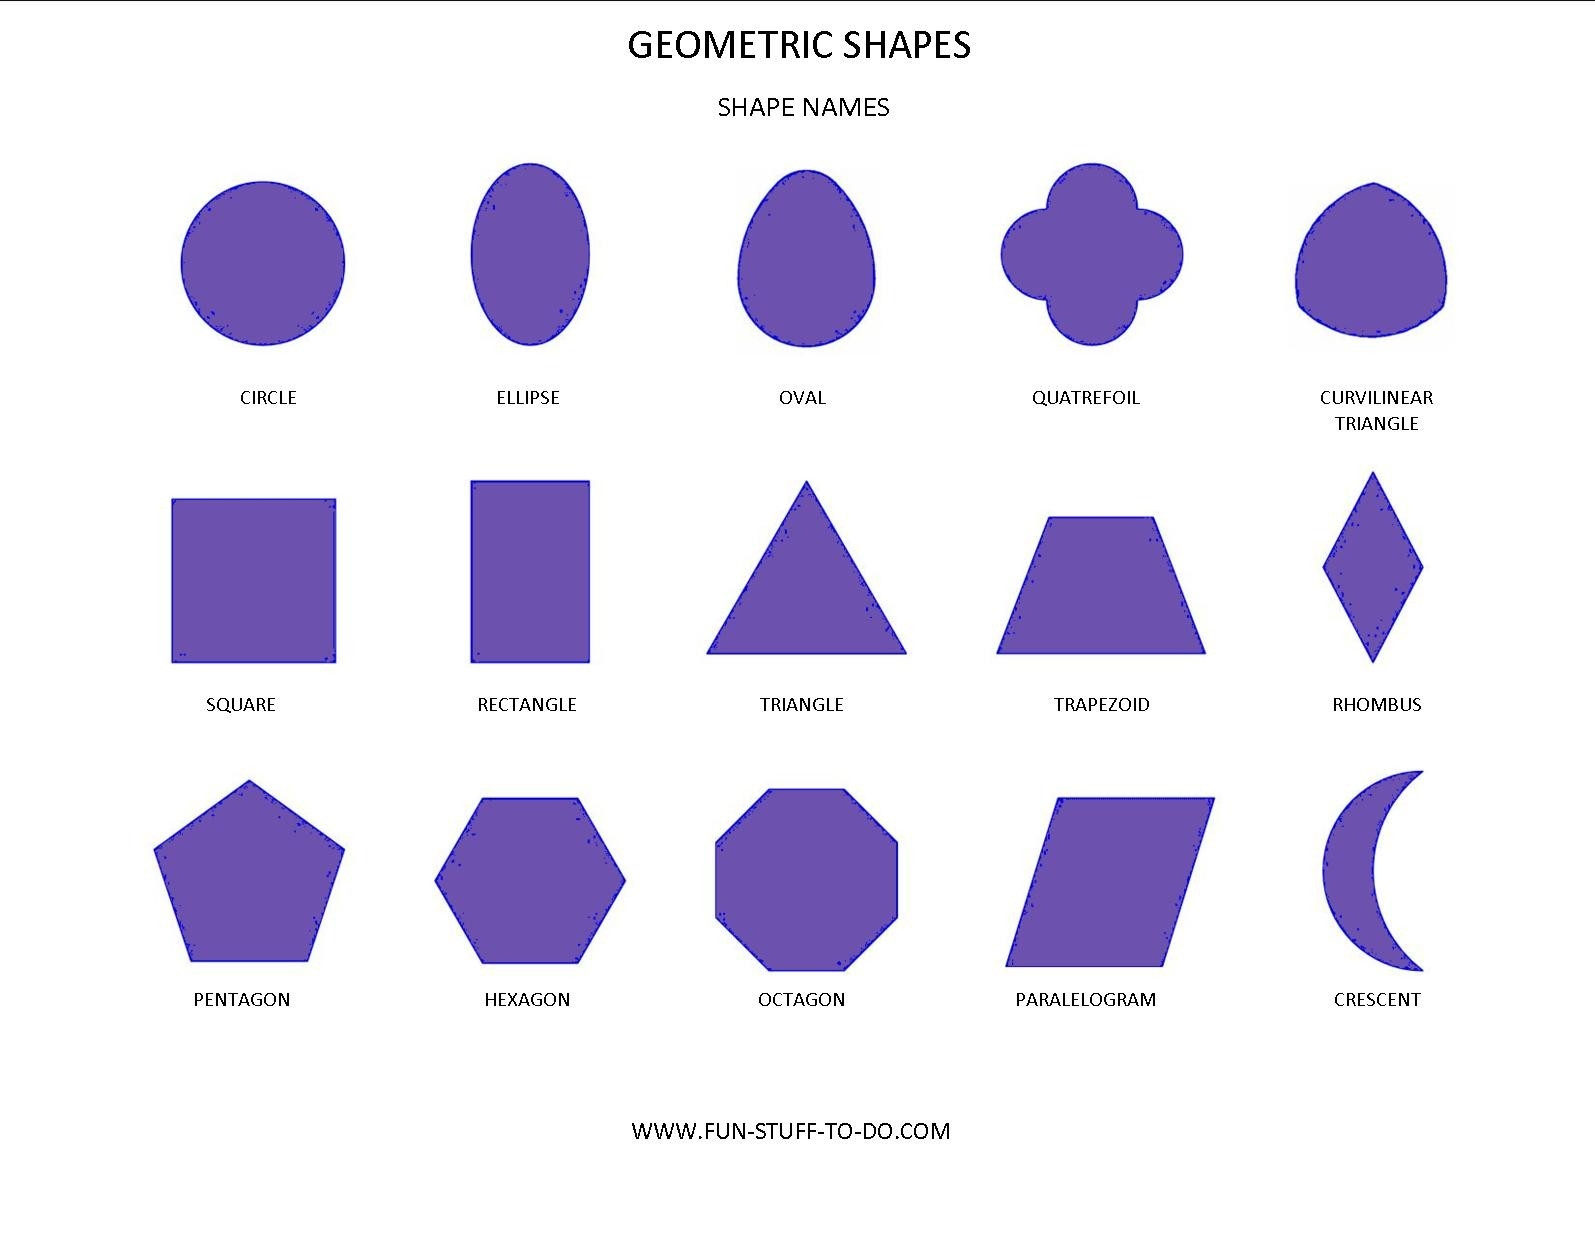 Google Image Result For Http://www.fun-Stuff-To-Do/images throughout Geometric Shapes And Names 23938